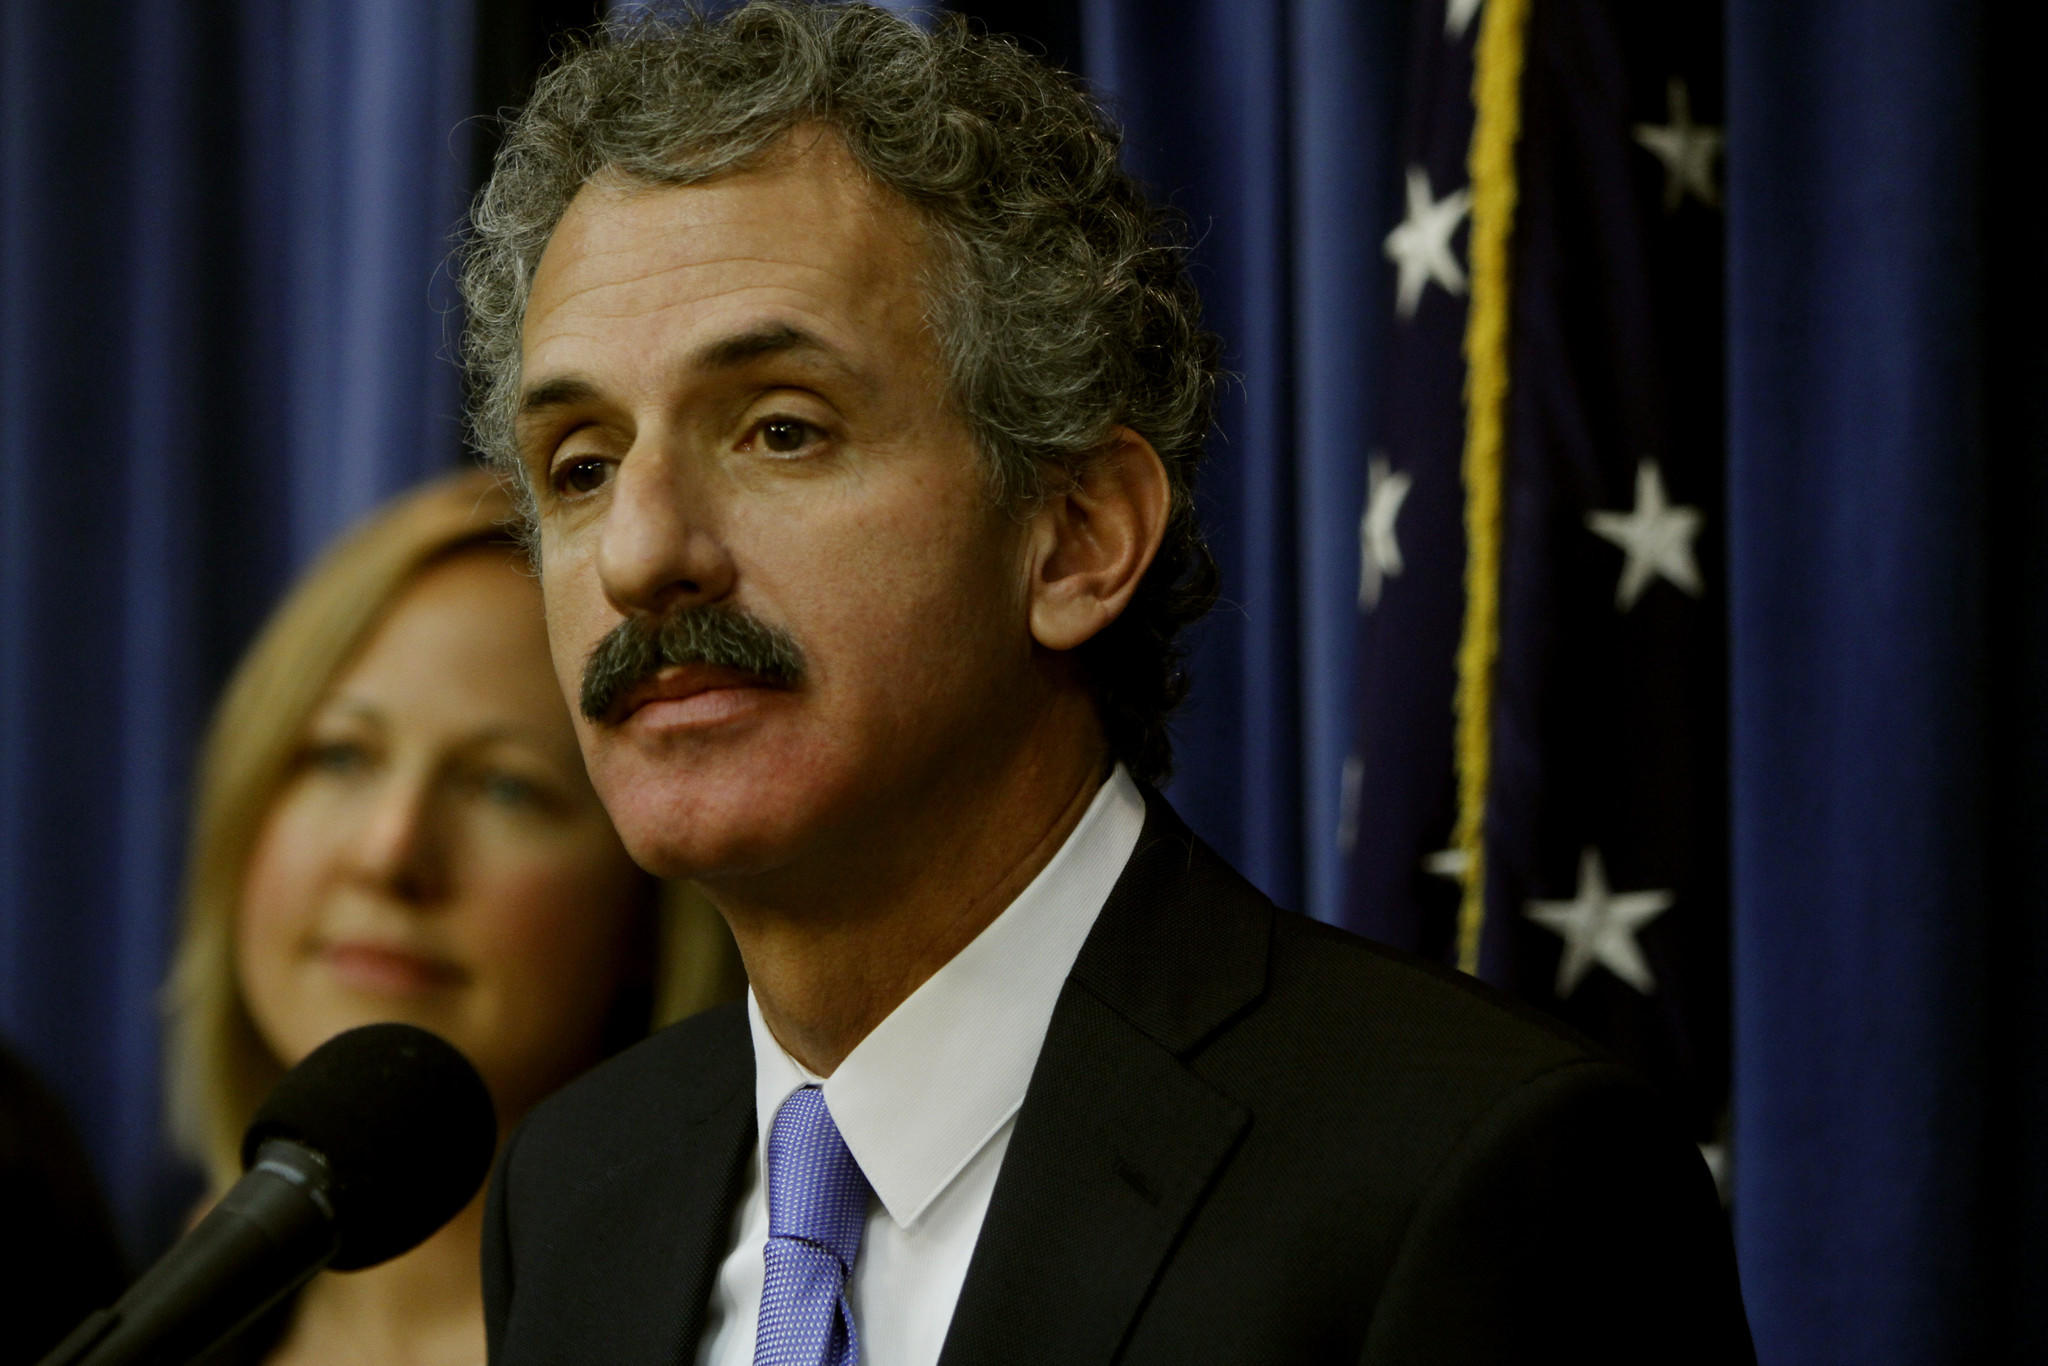 City Attorney Mike Feuer holds a press conference in his office in Los Angeles on Dec. 27, 2013.